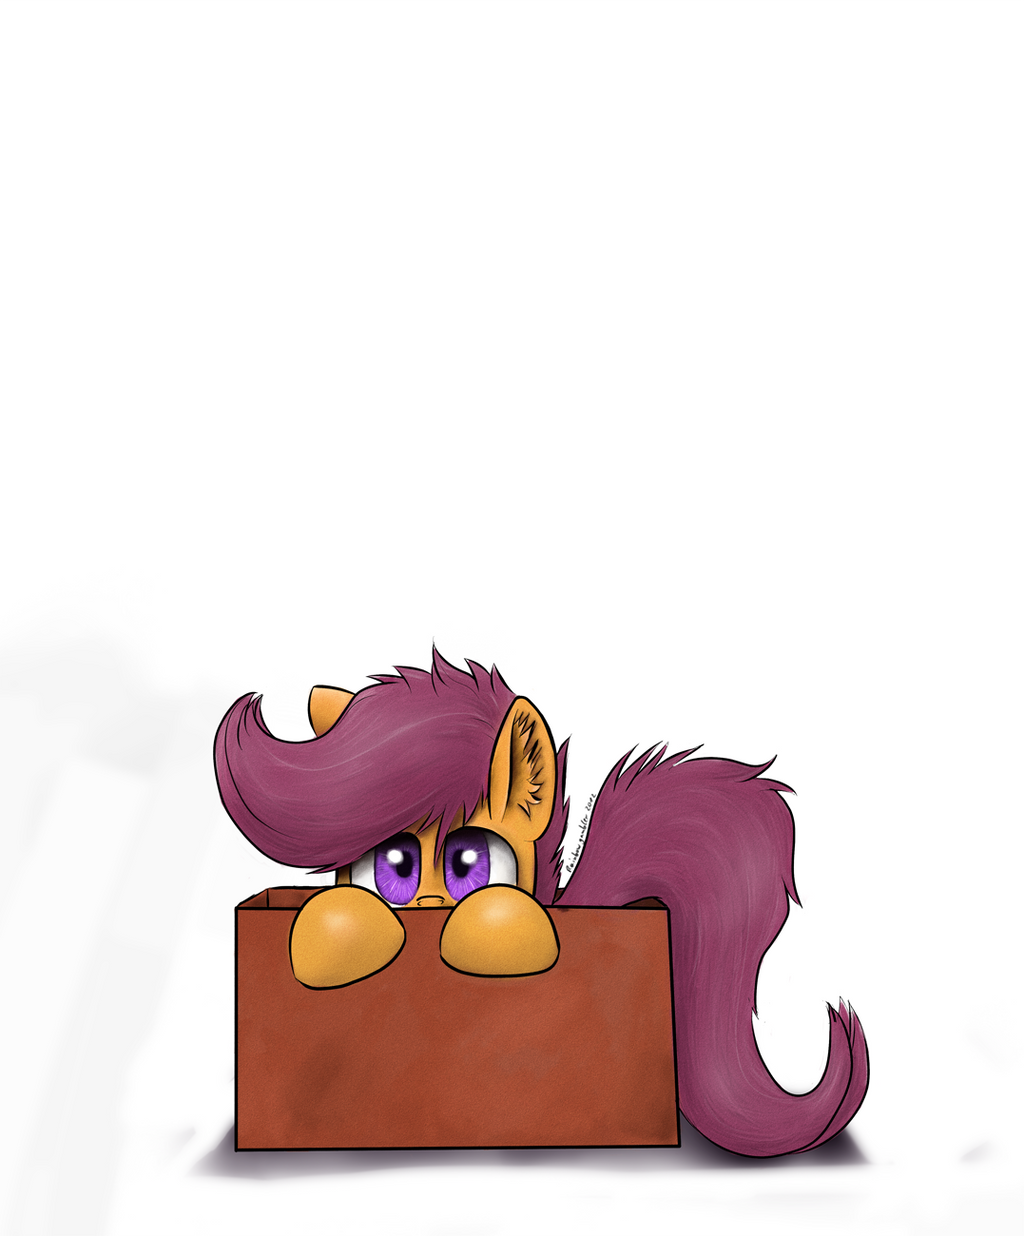 Scoot in a Box by RainbowGambler